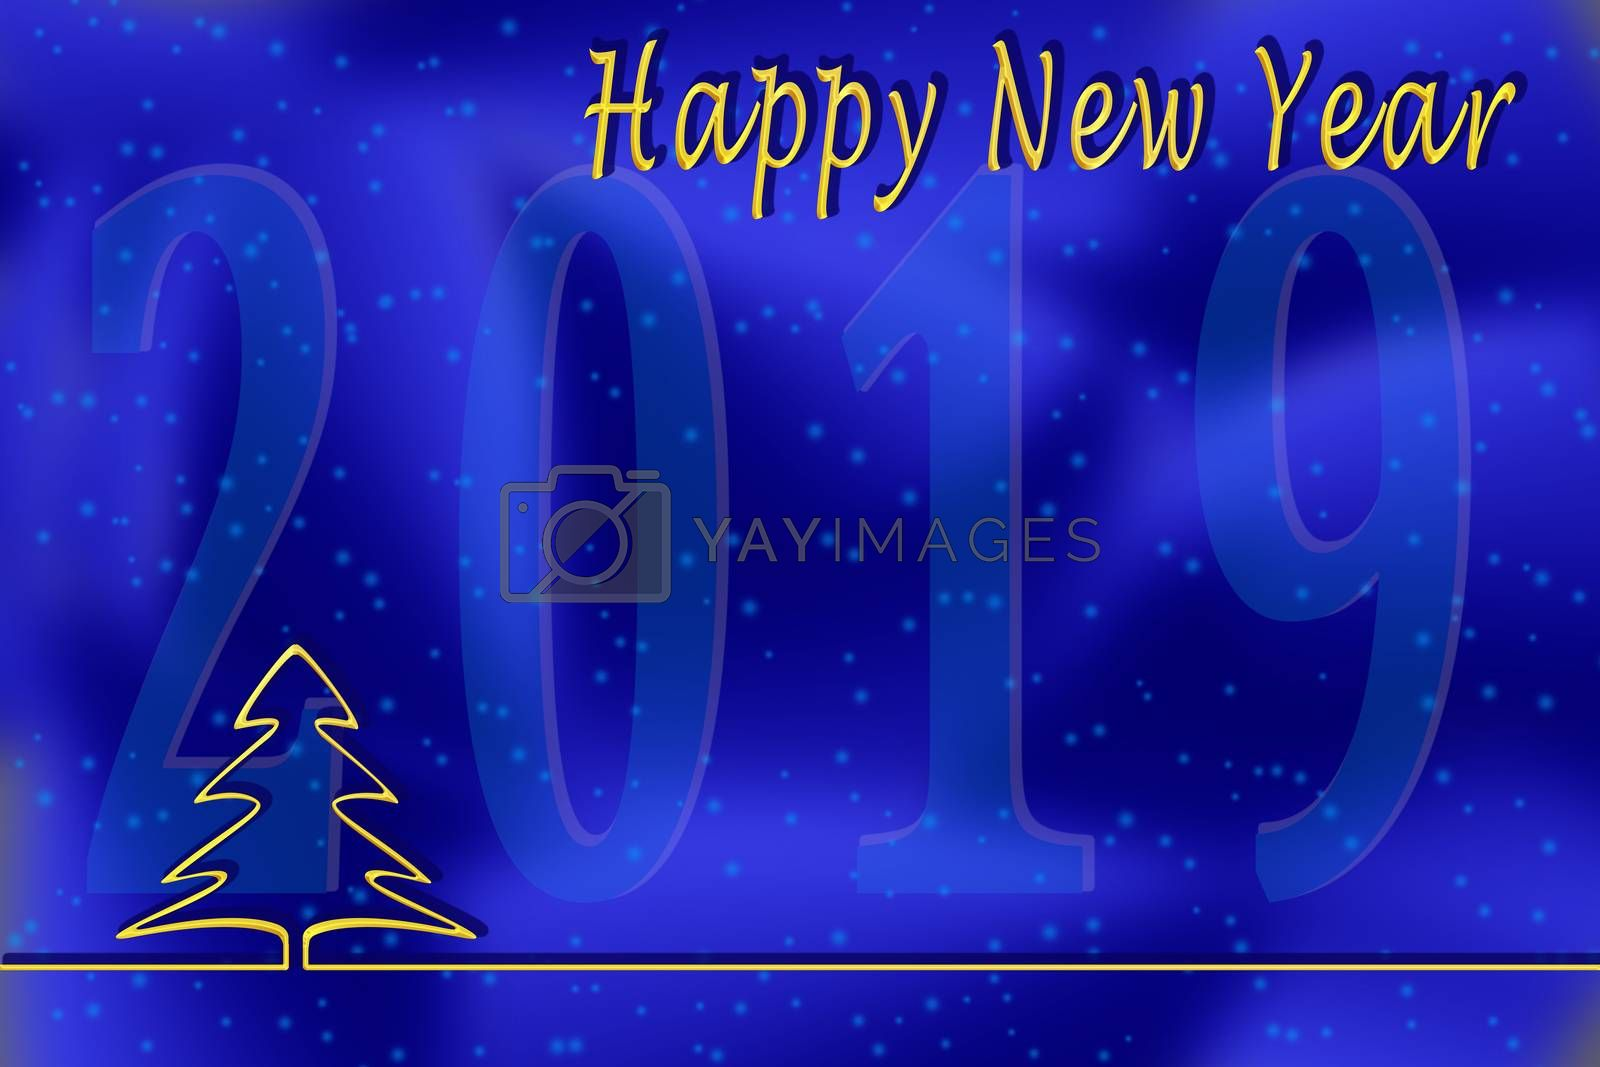 New 2019 greetings template on a blue background with a Golden outline of the Christmas tree